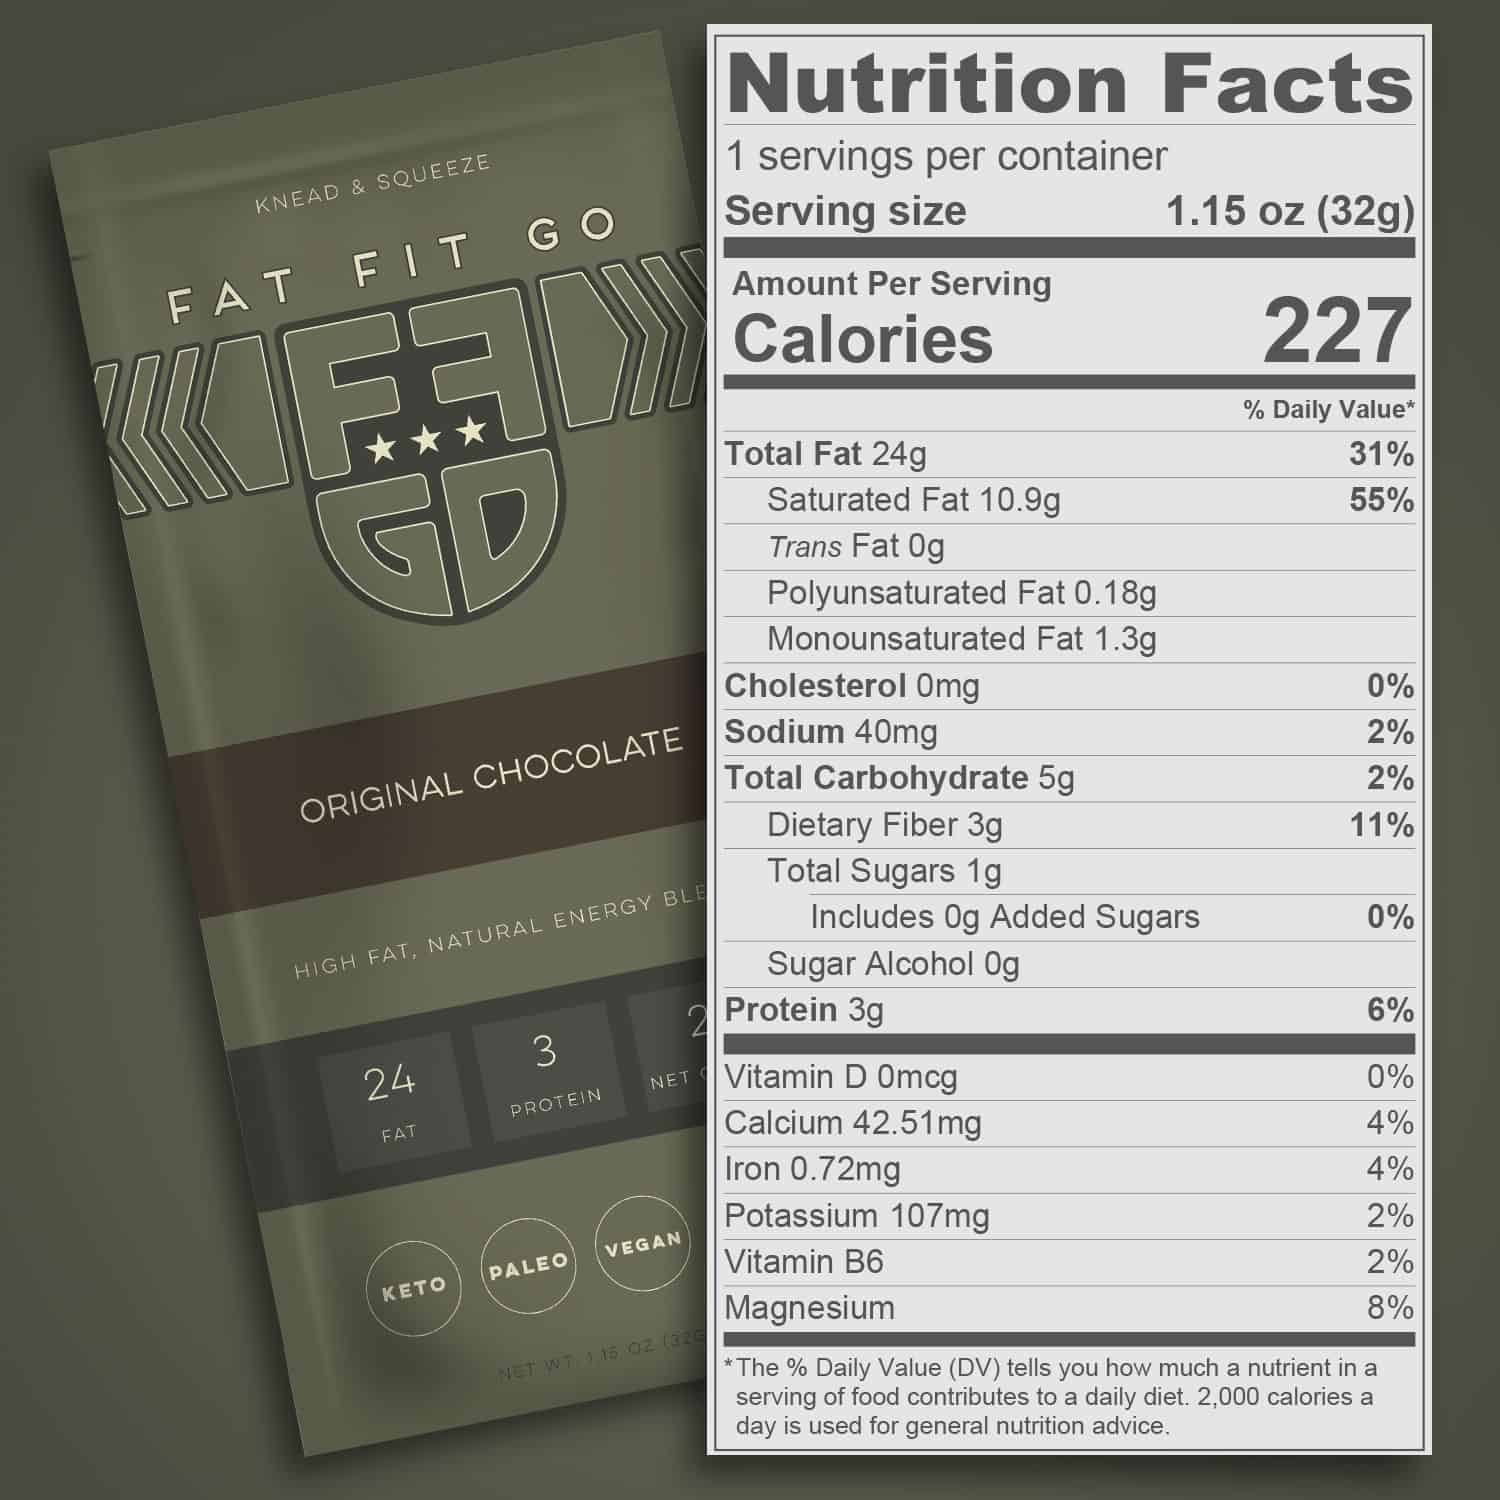 Nutrition Facts - Fat Fit Go Original Chocolate